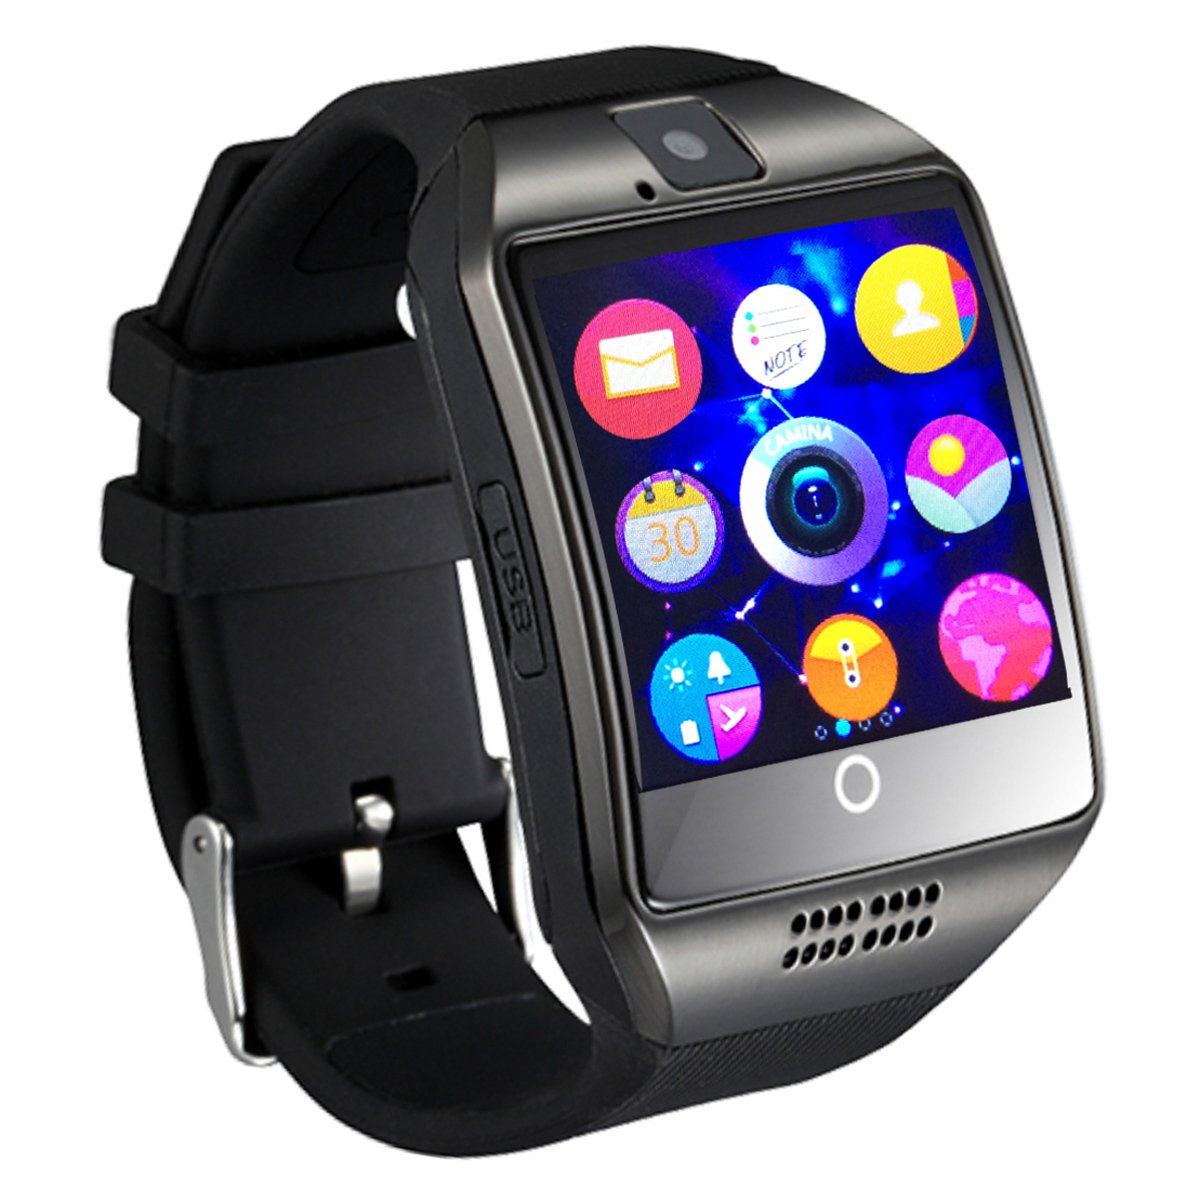 (2nd Generation) Smart Watch,OURSPOP Bluetooth SmartWatch Unlocked Watch Cell Phone -1.54inch Touch Screen GSM 2G SIM Card Sleep Monitor Remote Sync for Android (Q1 Black)